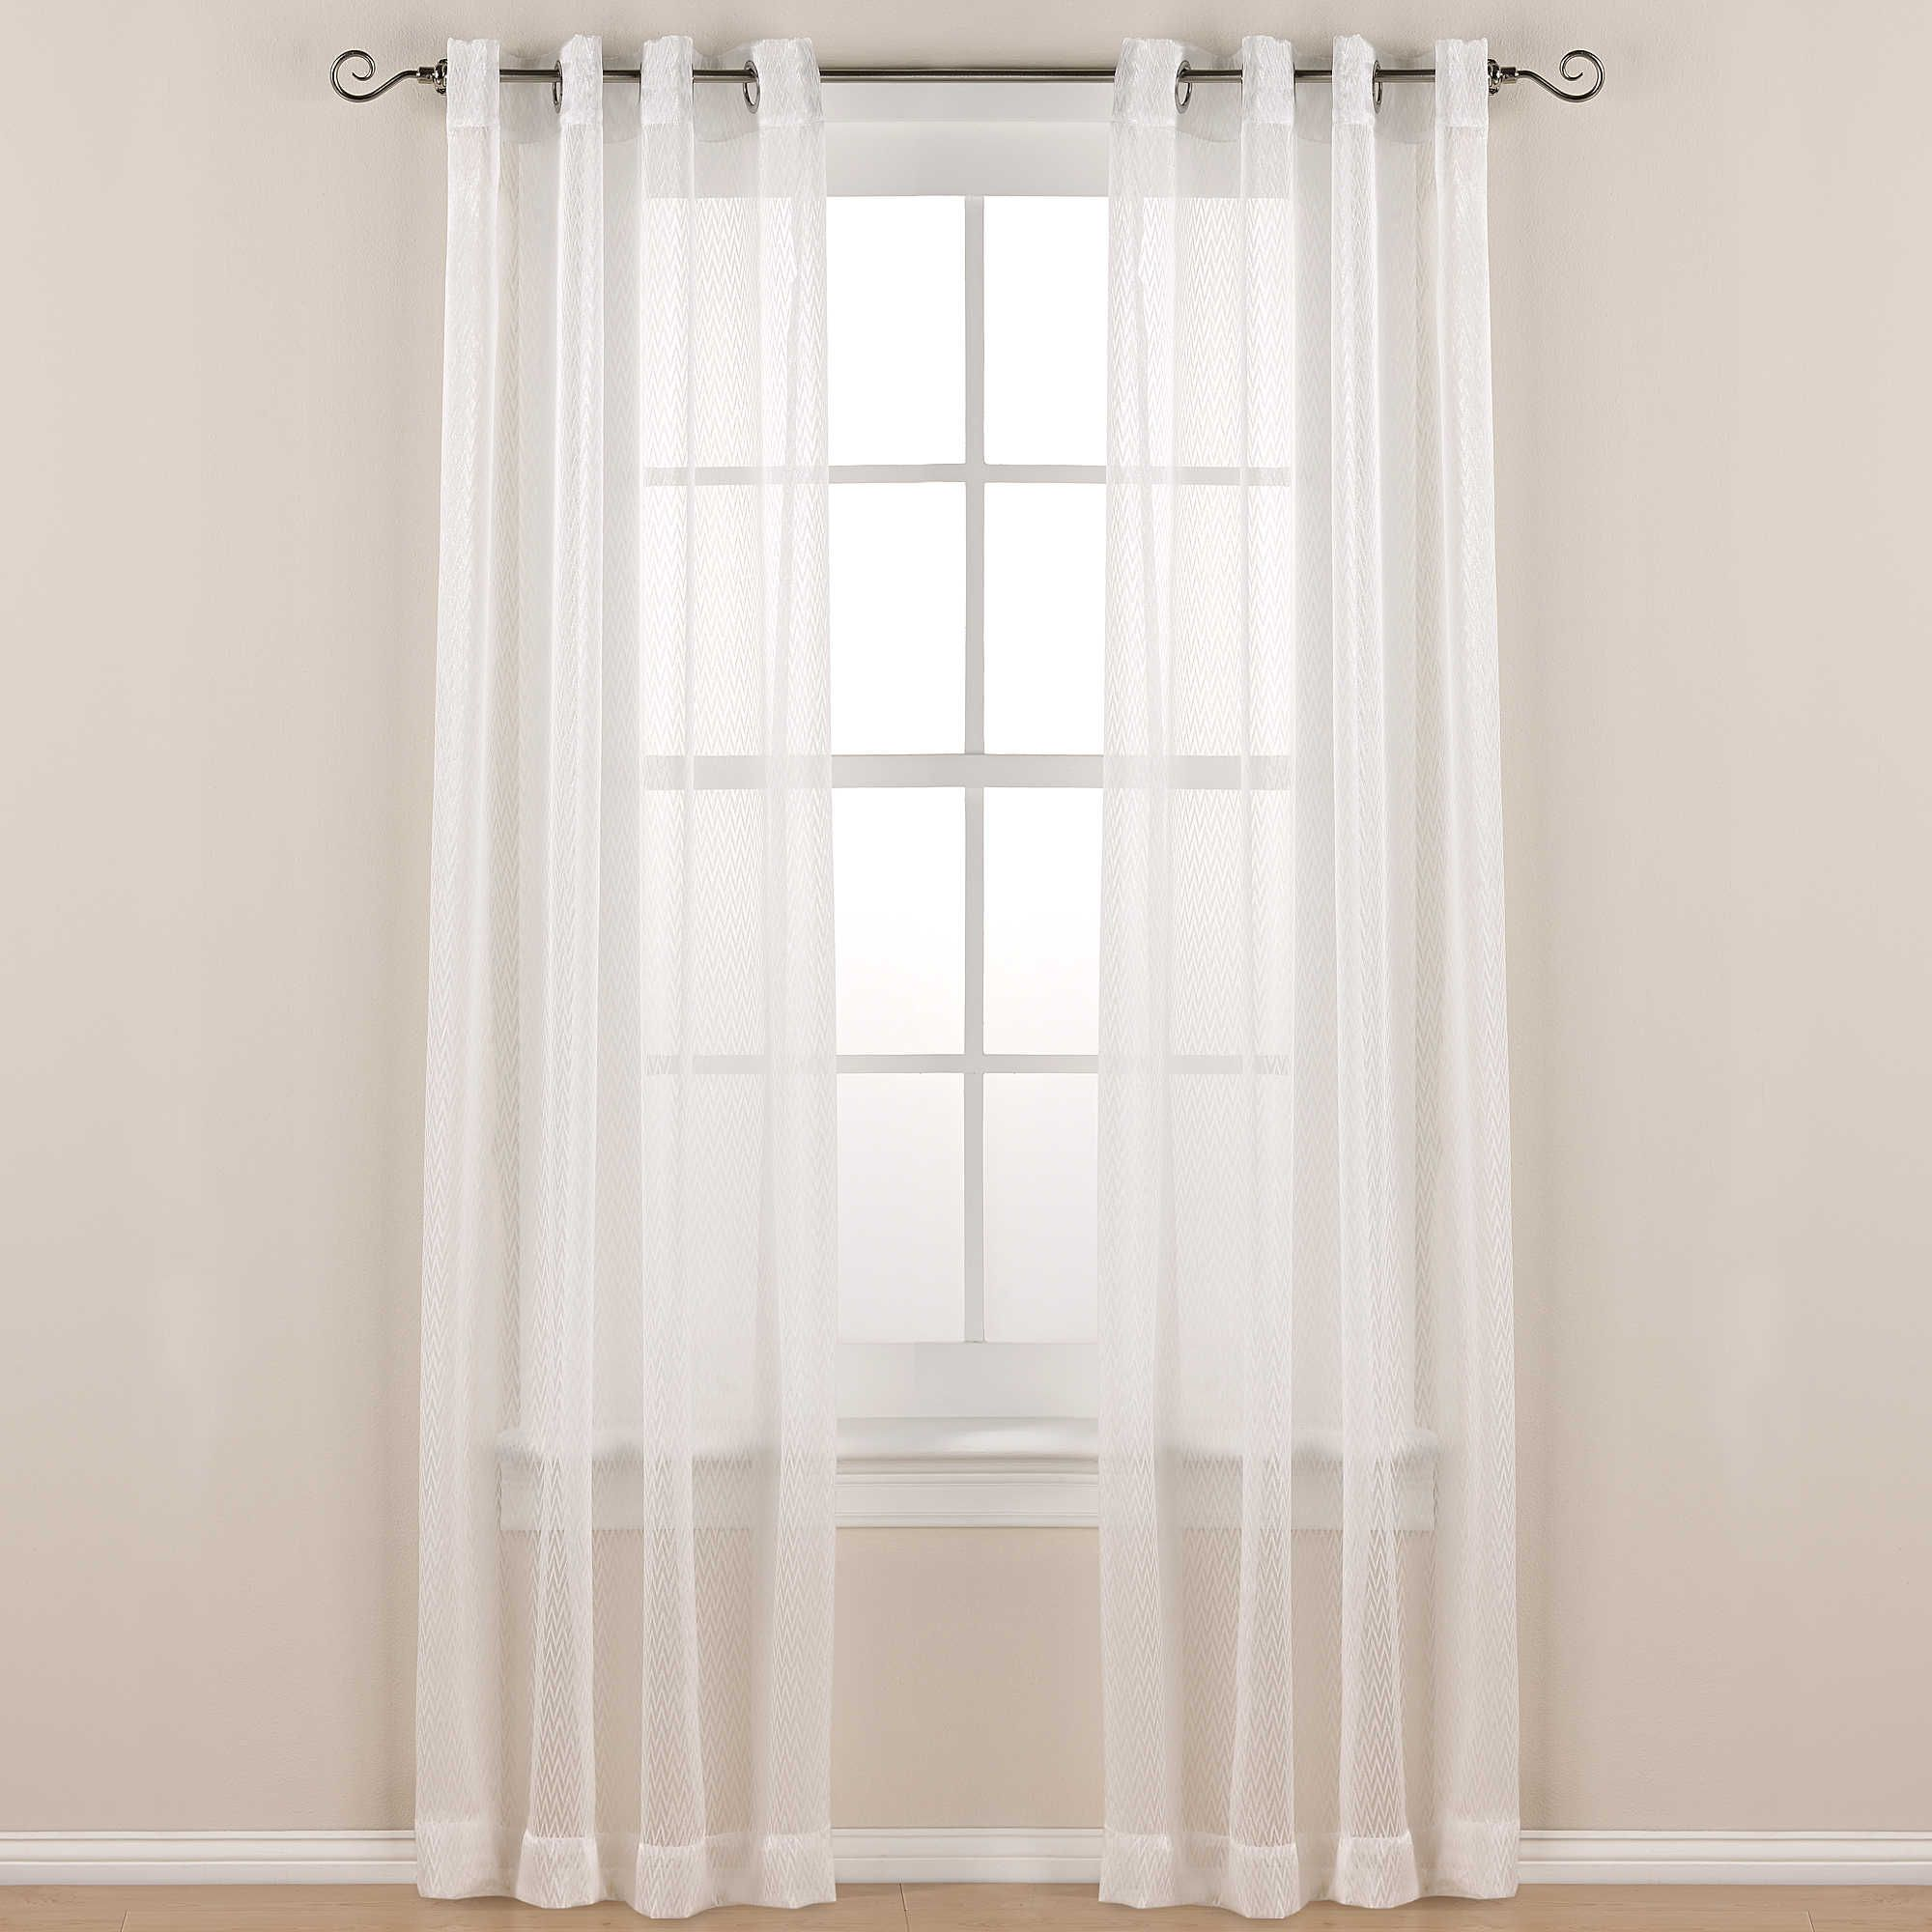 Carnaby Street 84 Inch Grommet Top Sheer Window Curtain Panel In Ivory